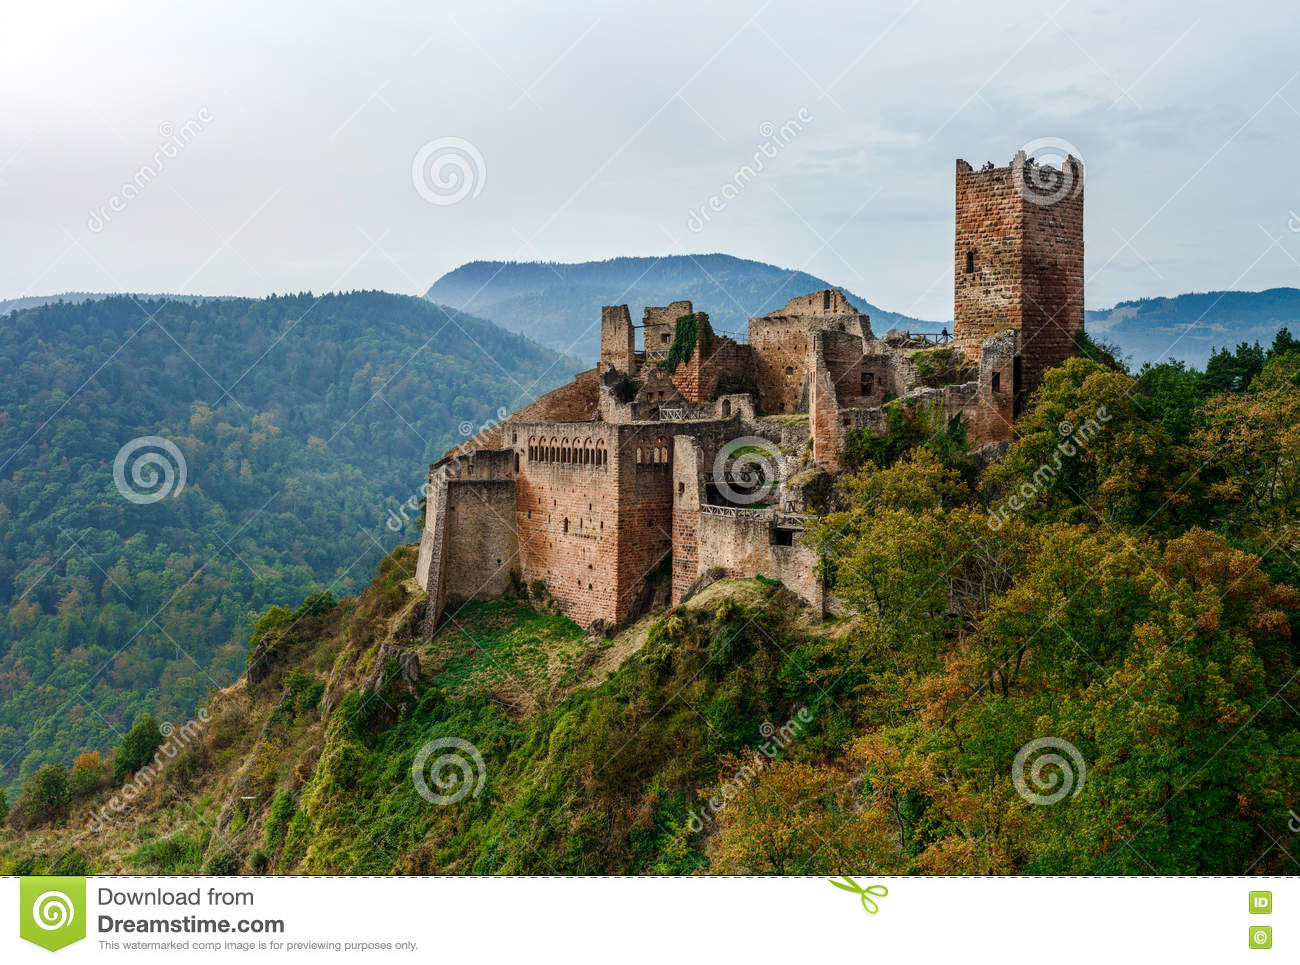 Majestic medieval castle Saint-Ulrich on the top of the hill